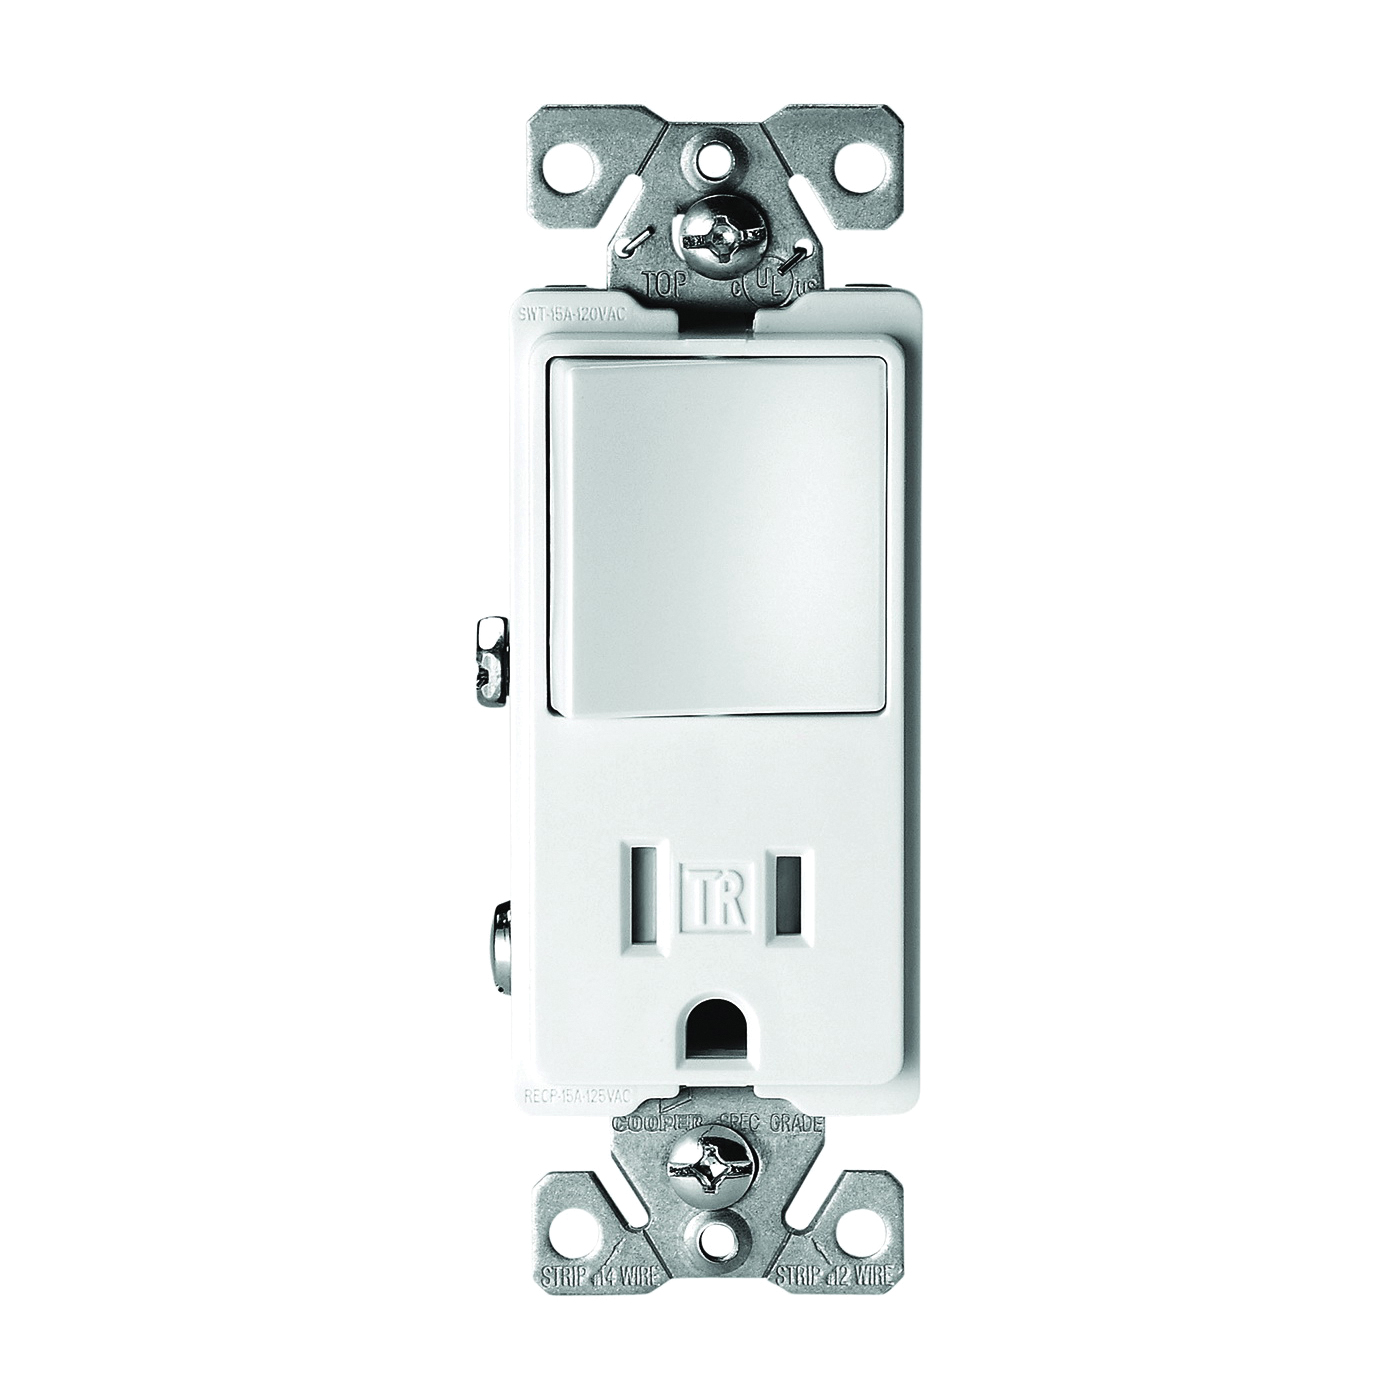 Picture of Eaton Cooper Wiring TR7730W Combination Switch/Receptacle, 1-Pole, 15 A, 120/277 V, White